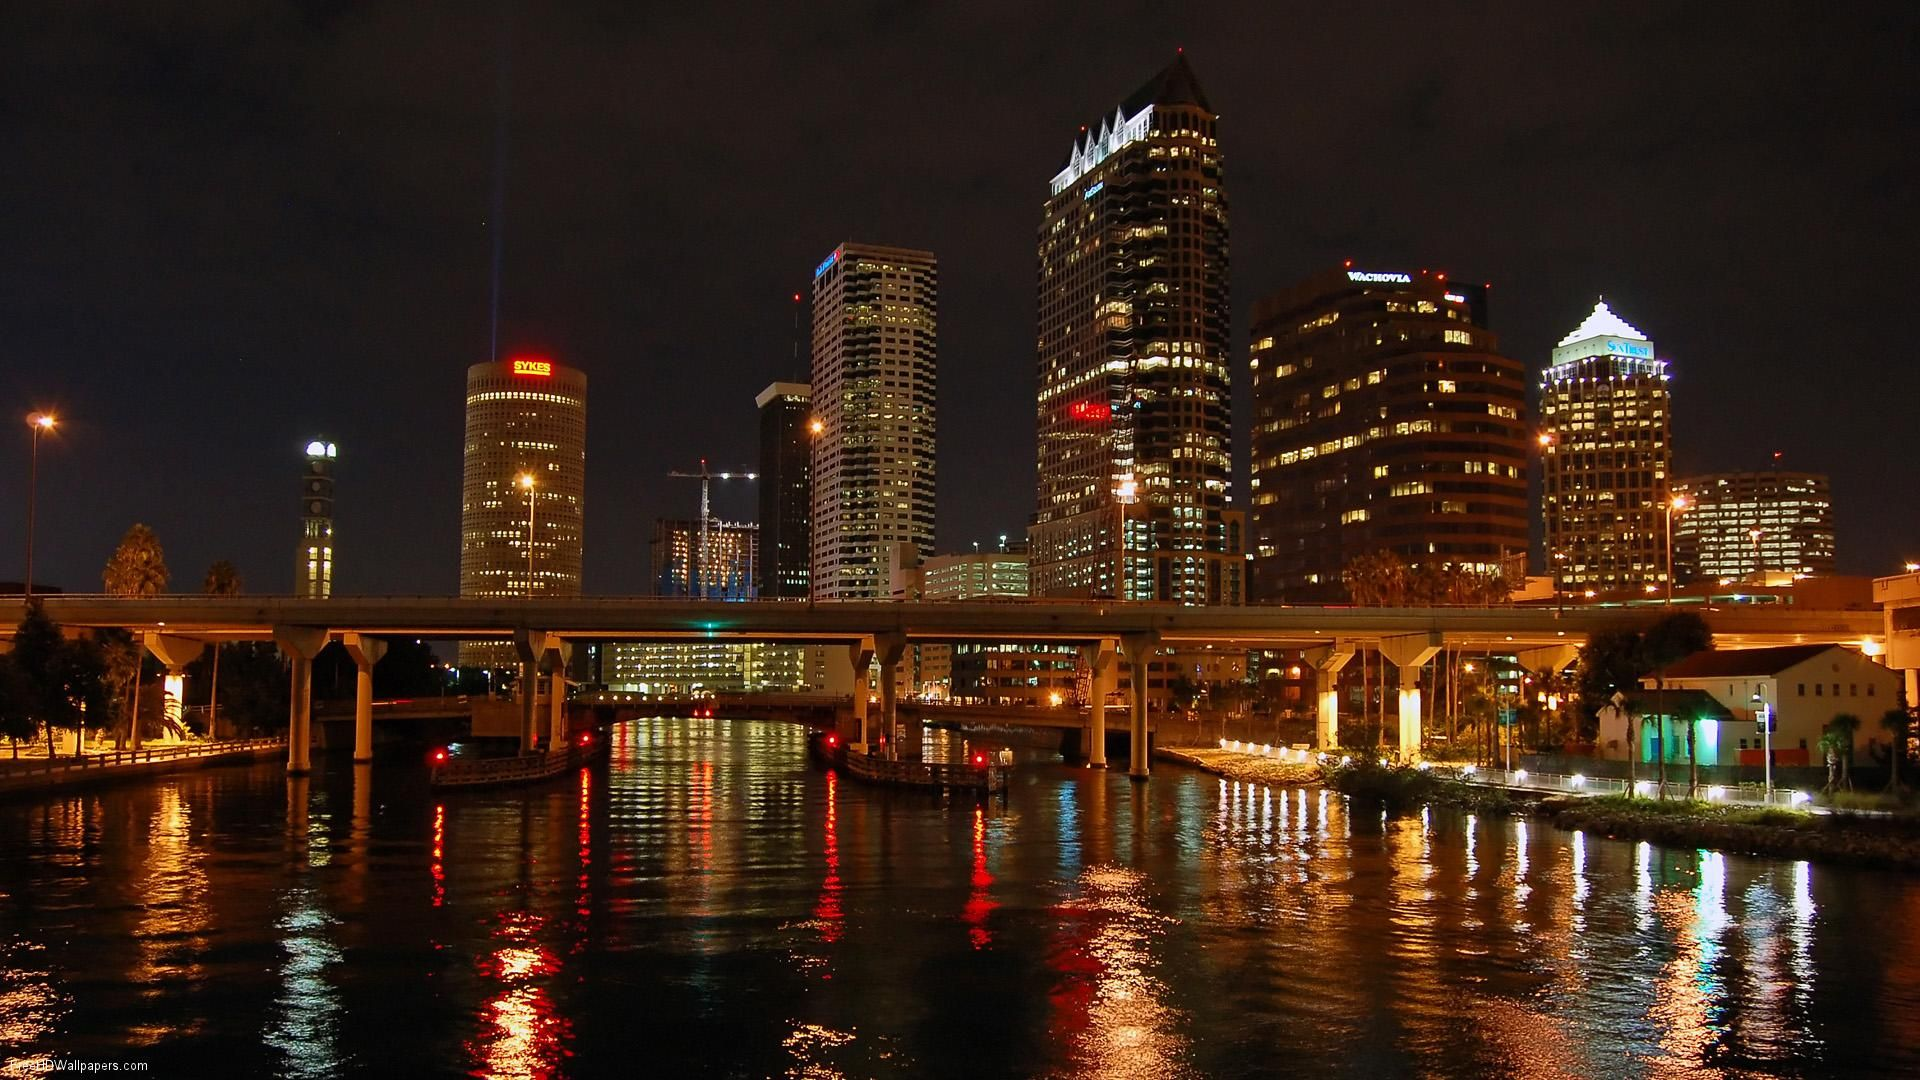 Tampa Bay NightScape. Home Sweet Home!